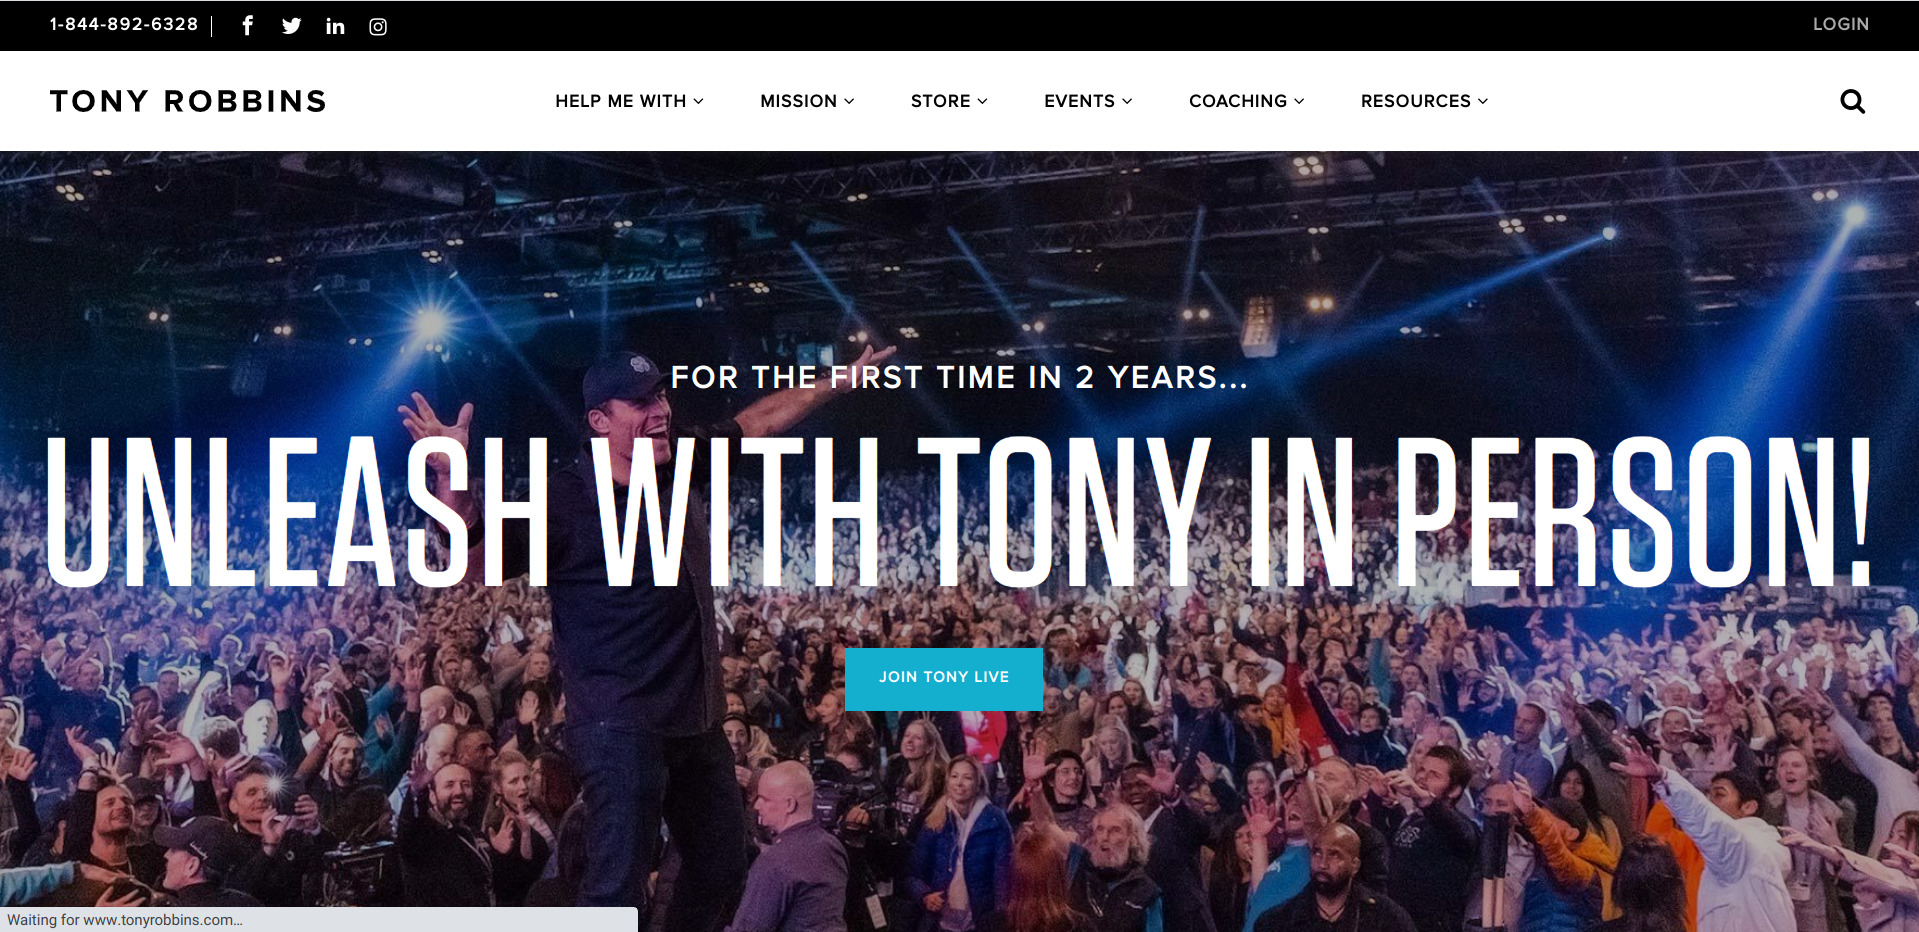 Is Tony Robbins Events And Coaching a Scam orLegit